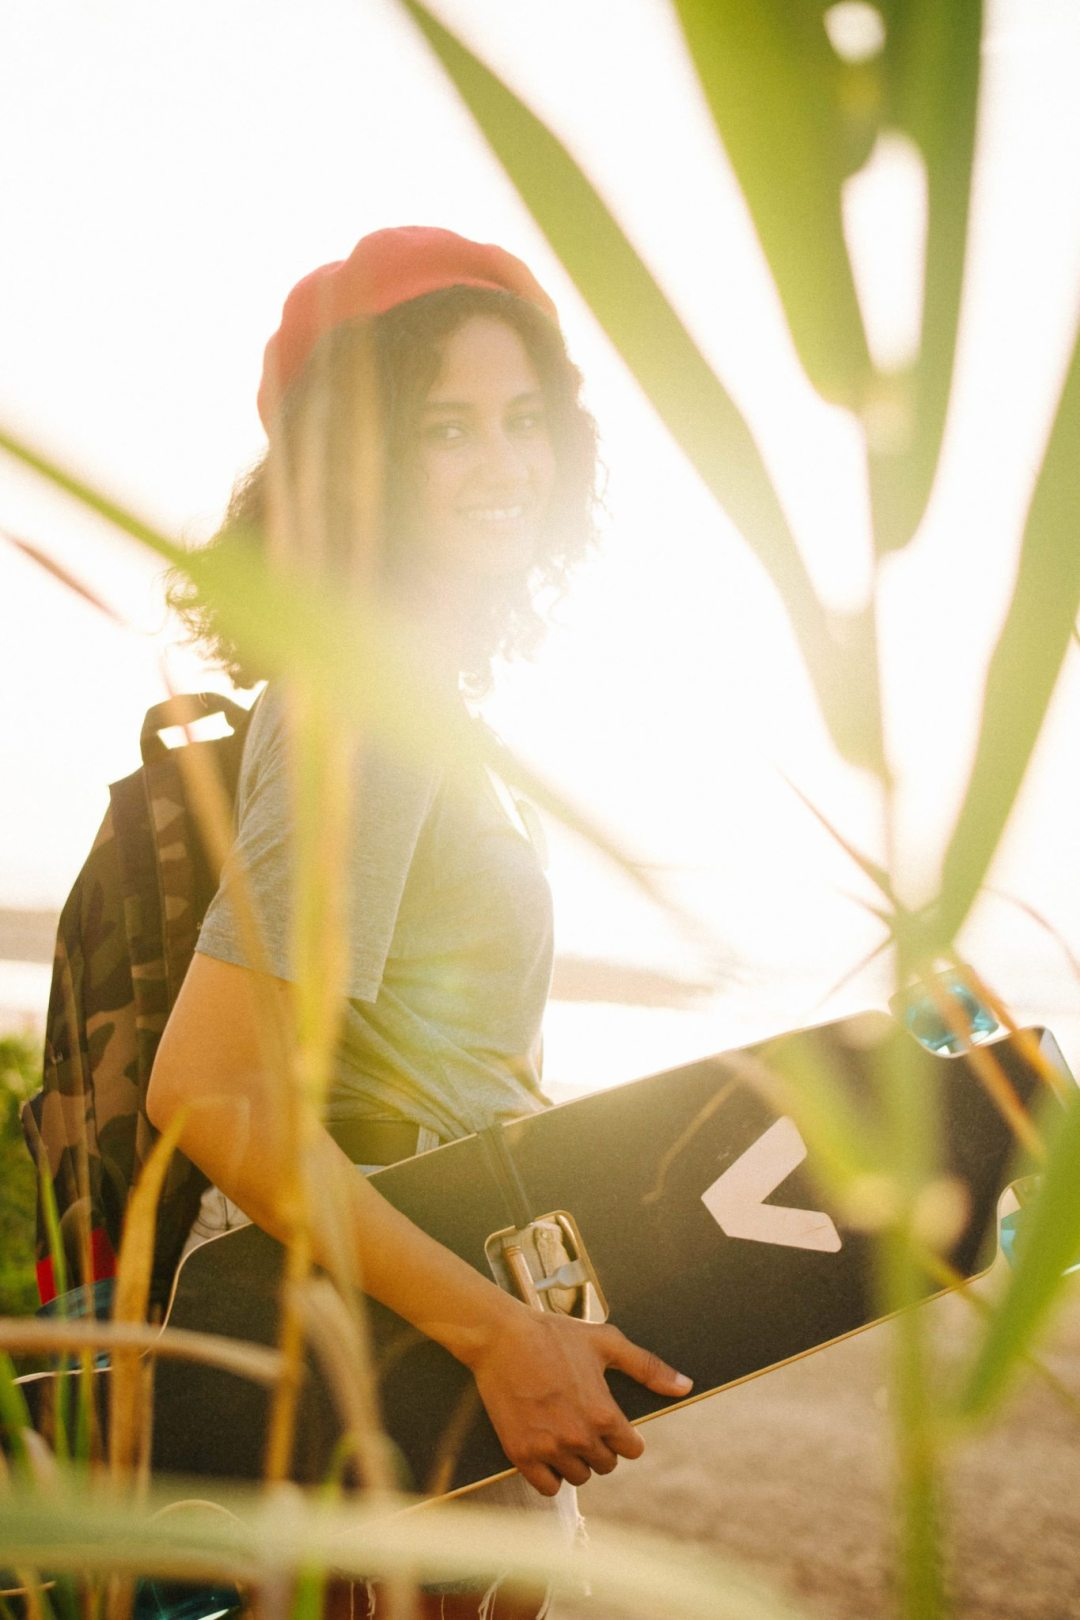 boardup-folding-skate-beach-flare-girl-justdalal-5-19